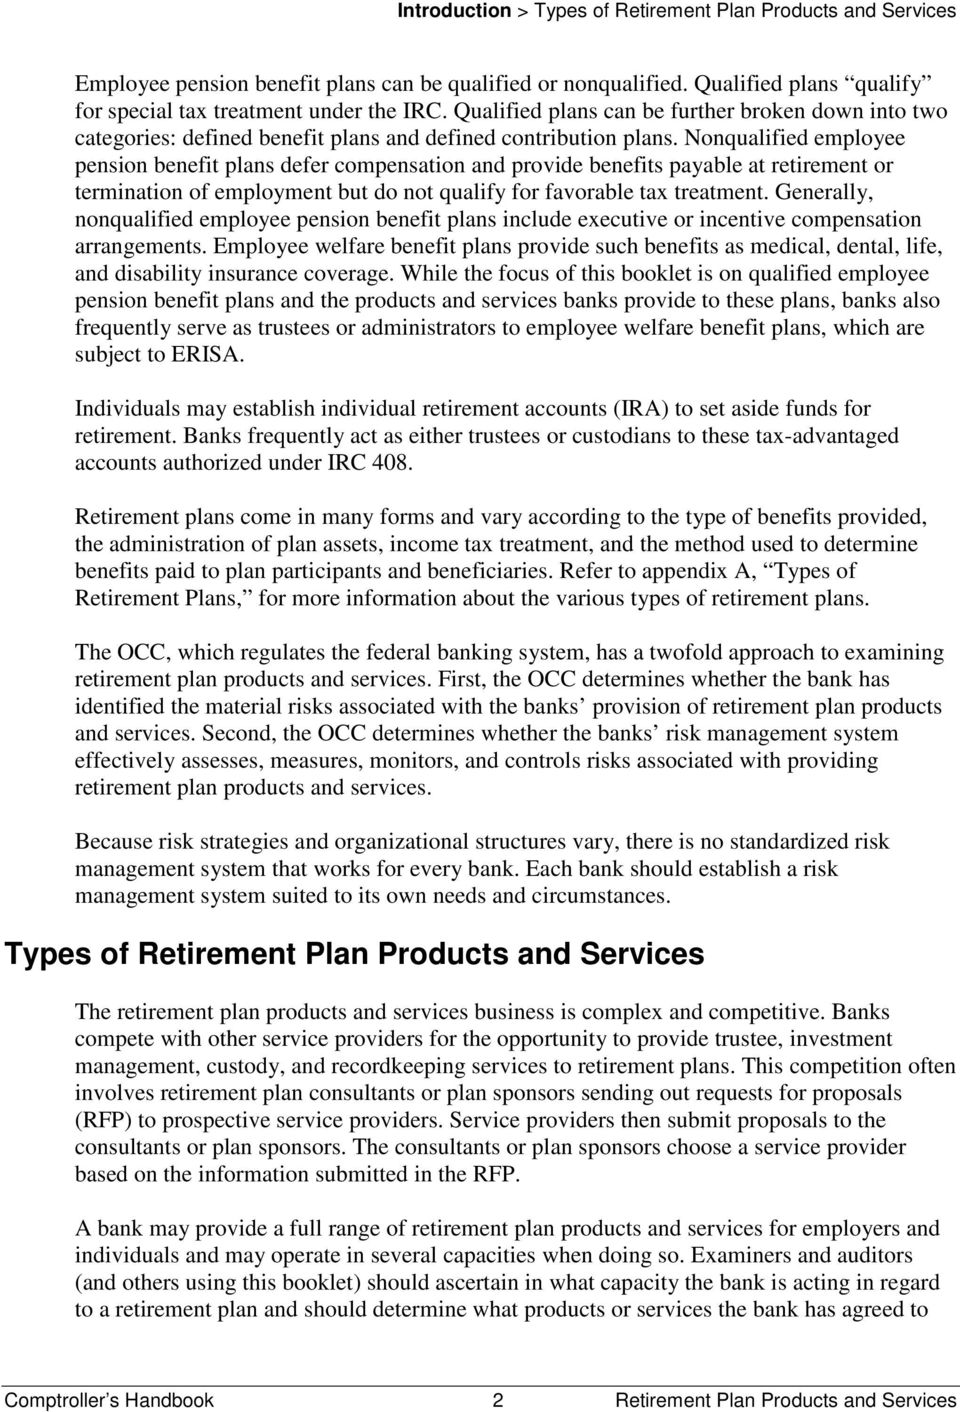 Nonqualified employee pension benefit plans defer compensation and provide benefits payable at retirement or termination of employment but do not qualify for favorable tax treatment.